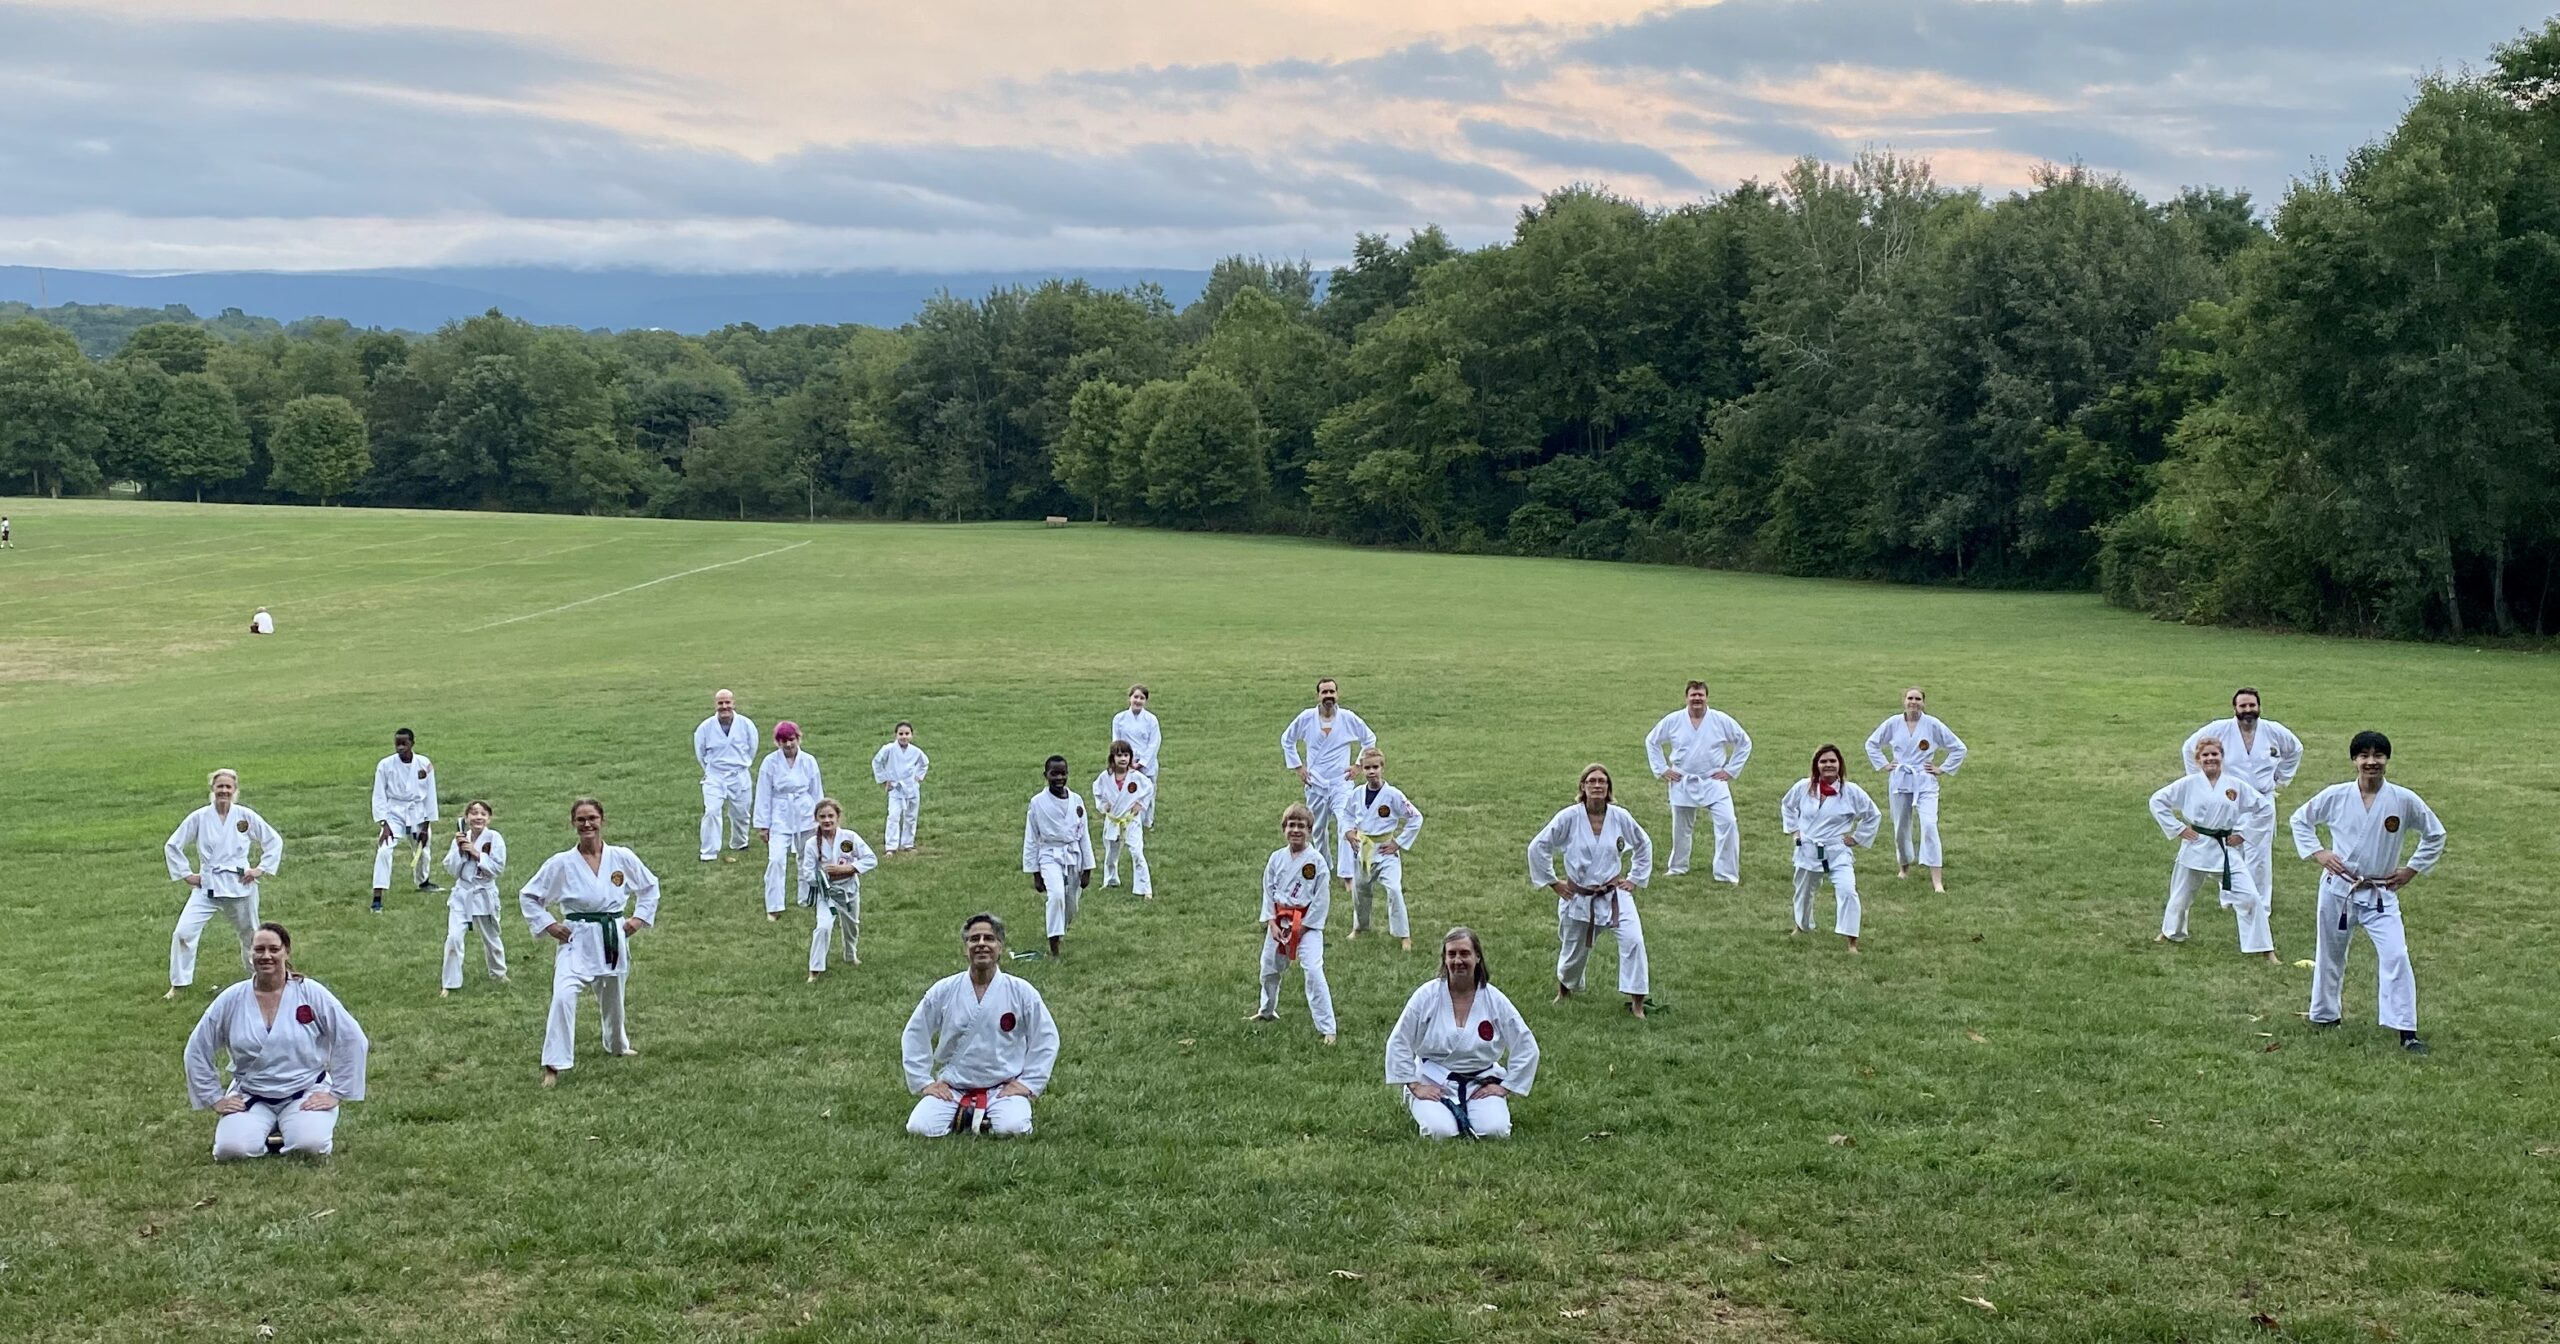 Our Tudek Park outdoor workout and belt test, Sept 2020